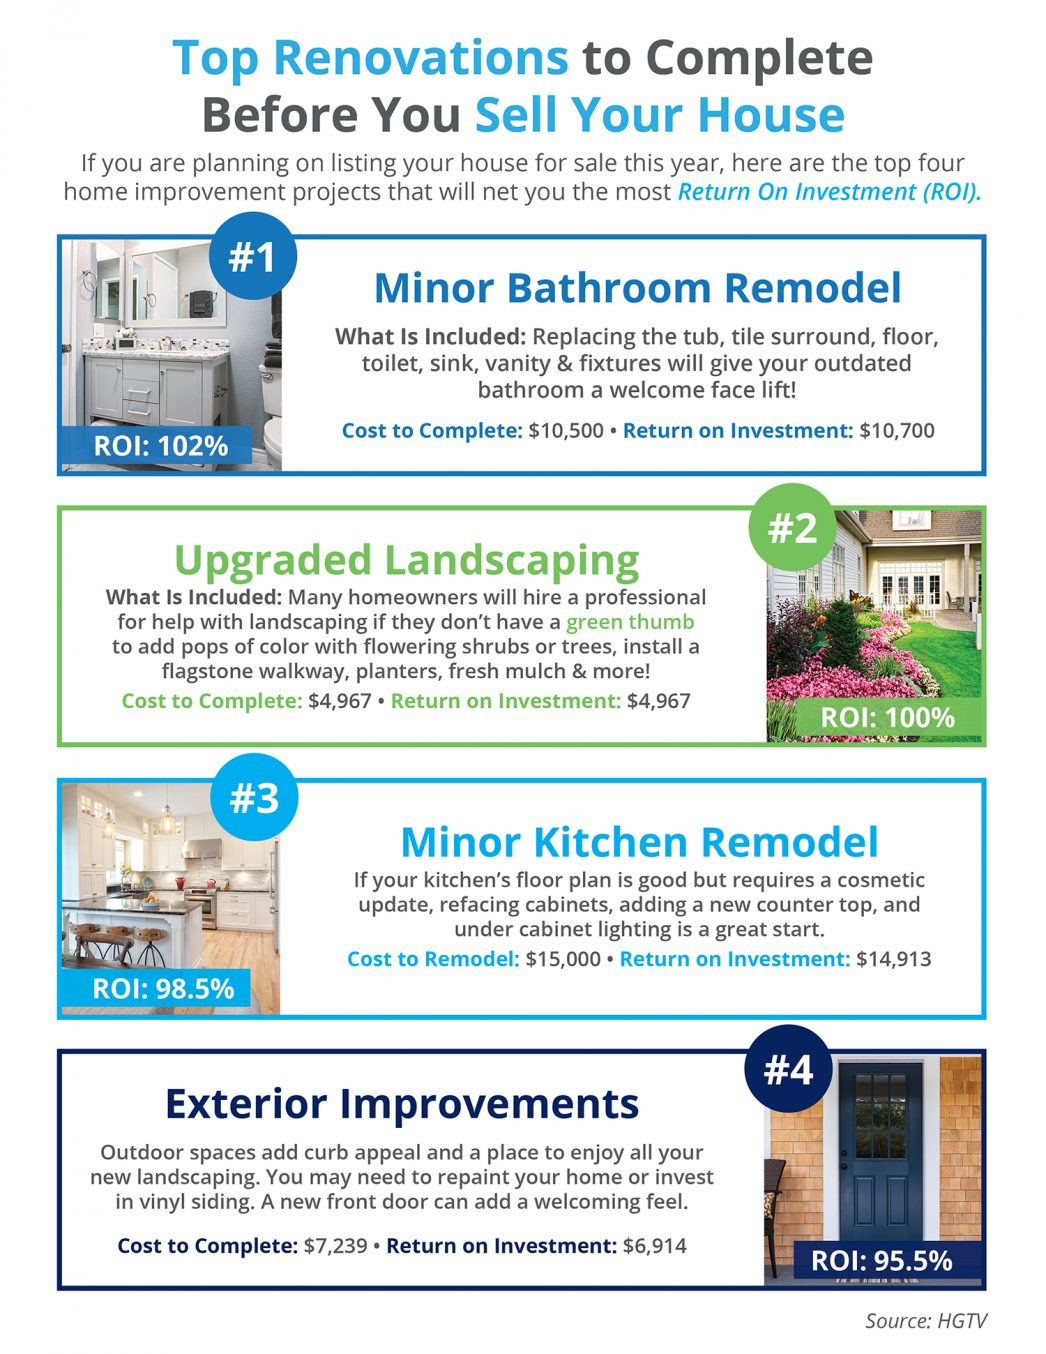 Top Renovations to Complete Before You Sell Your House [INFOGRAPHIC] | MyKCM